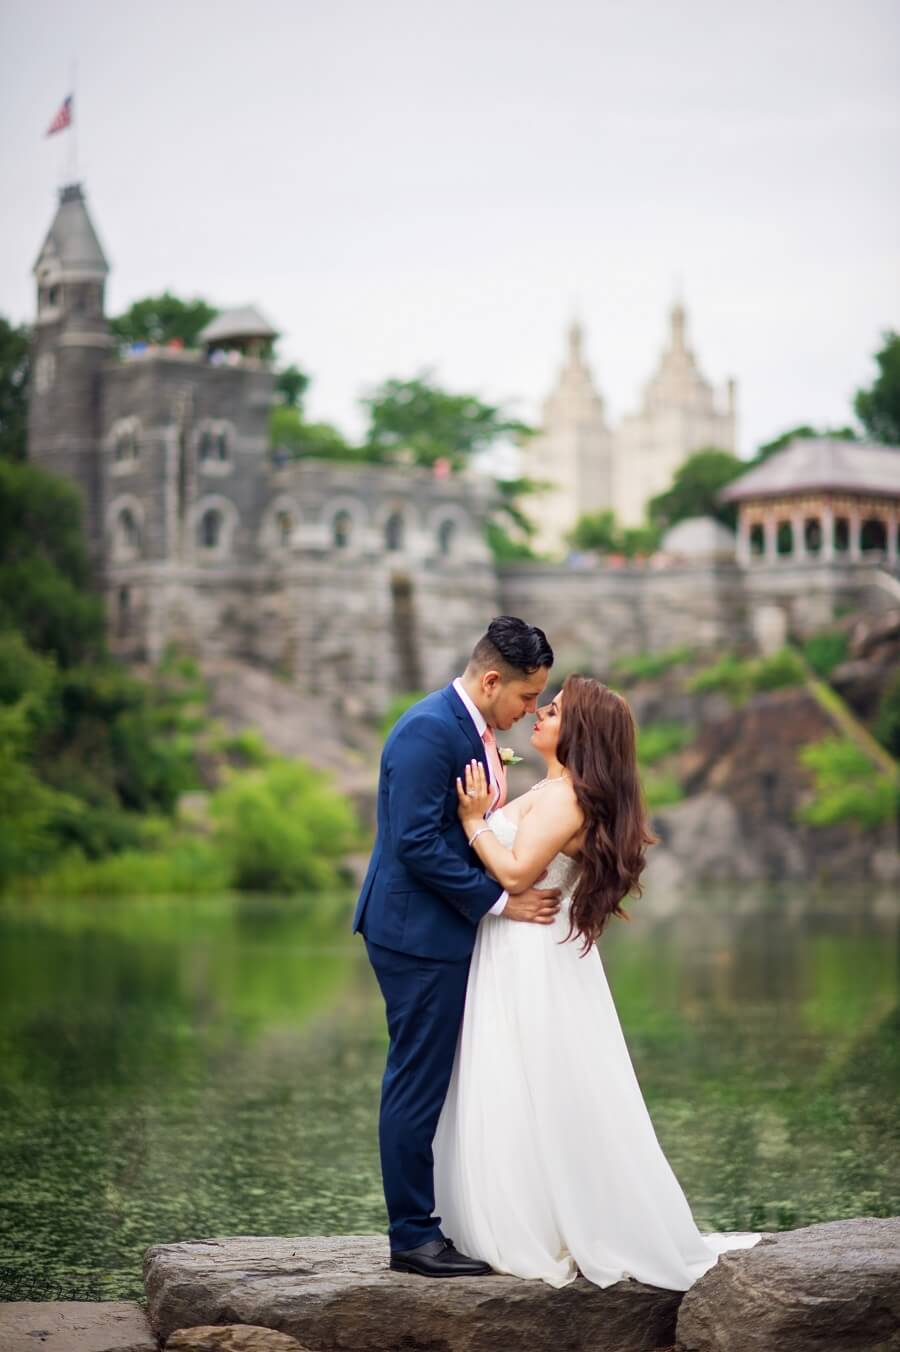 Bride and groom pose with Belvedere Castle in the background